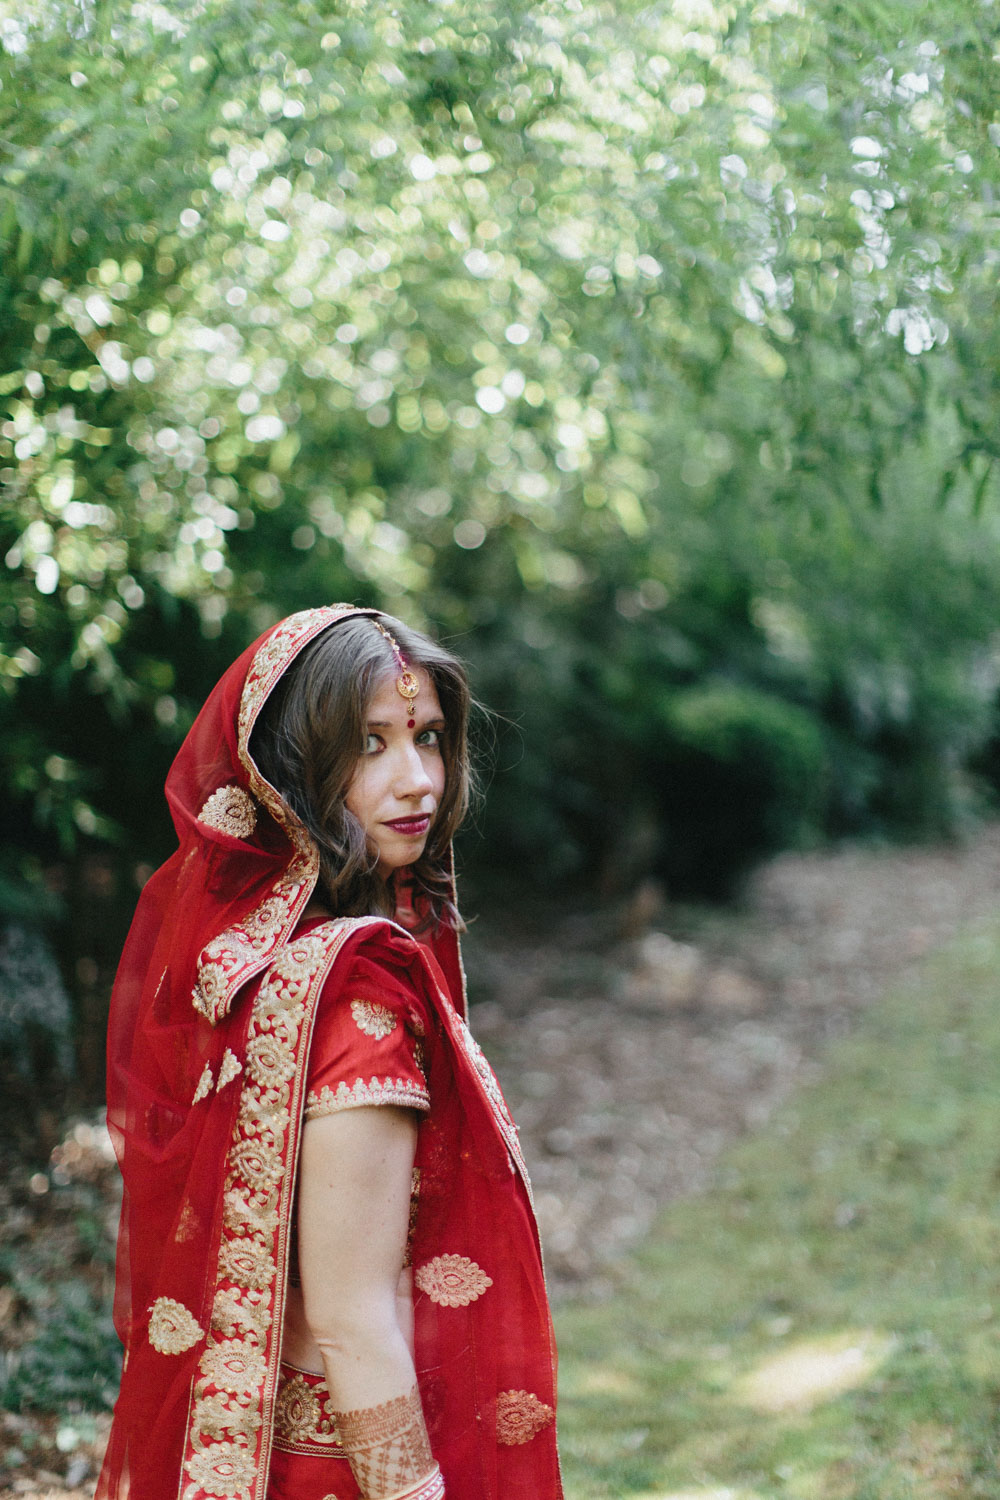 backyard_indian_wedding_roswell_atlanta_georgia_wedding_photographers-468.jpg